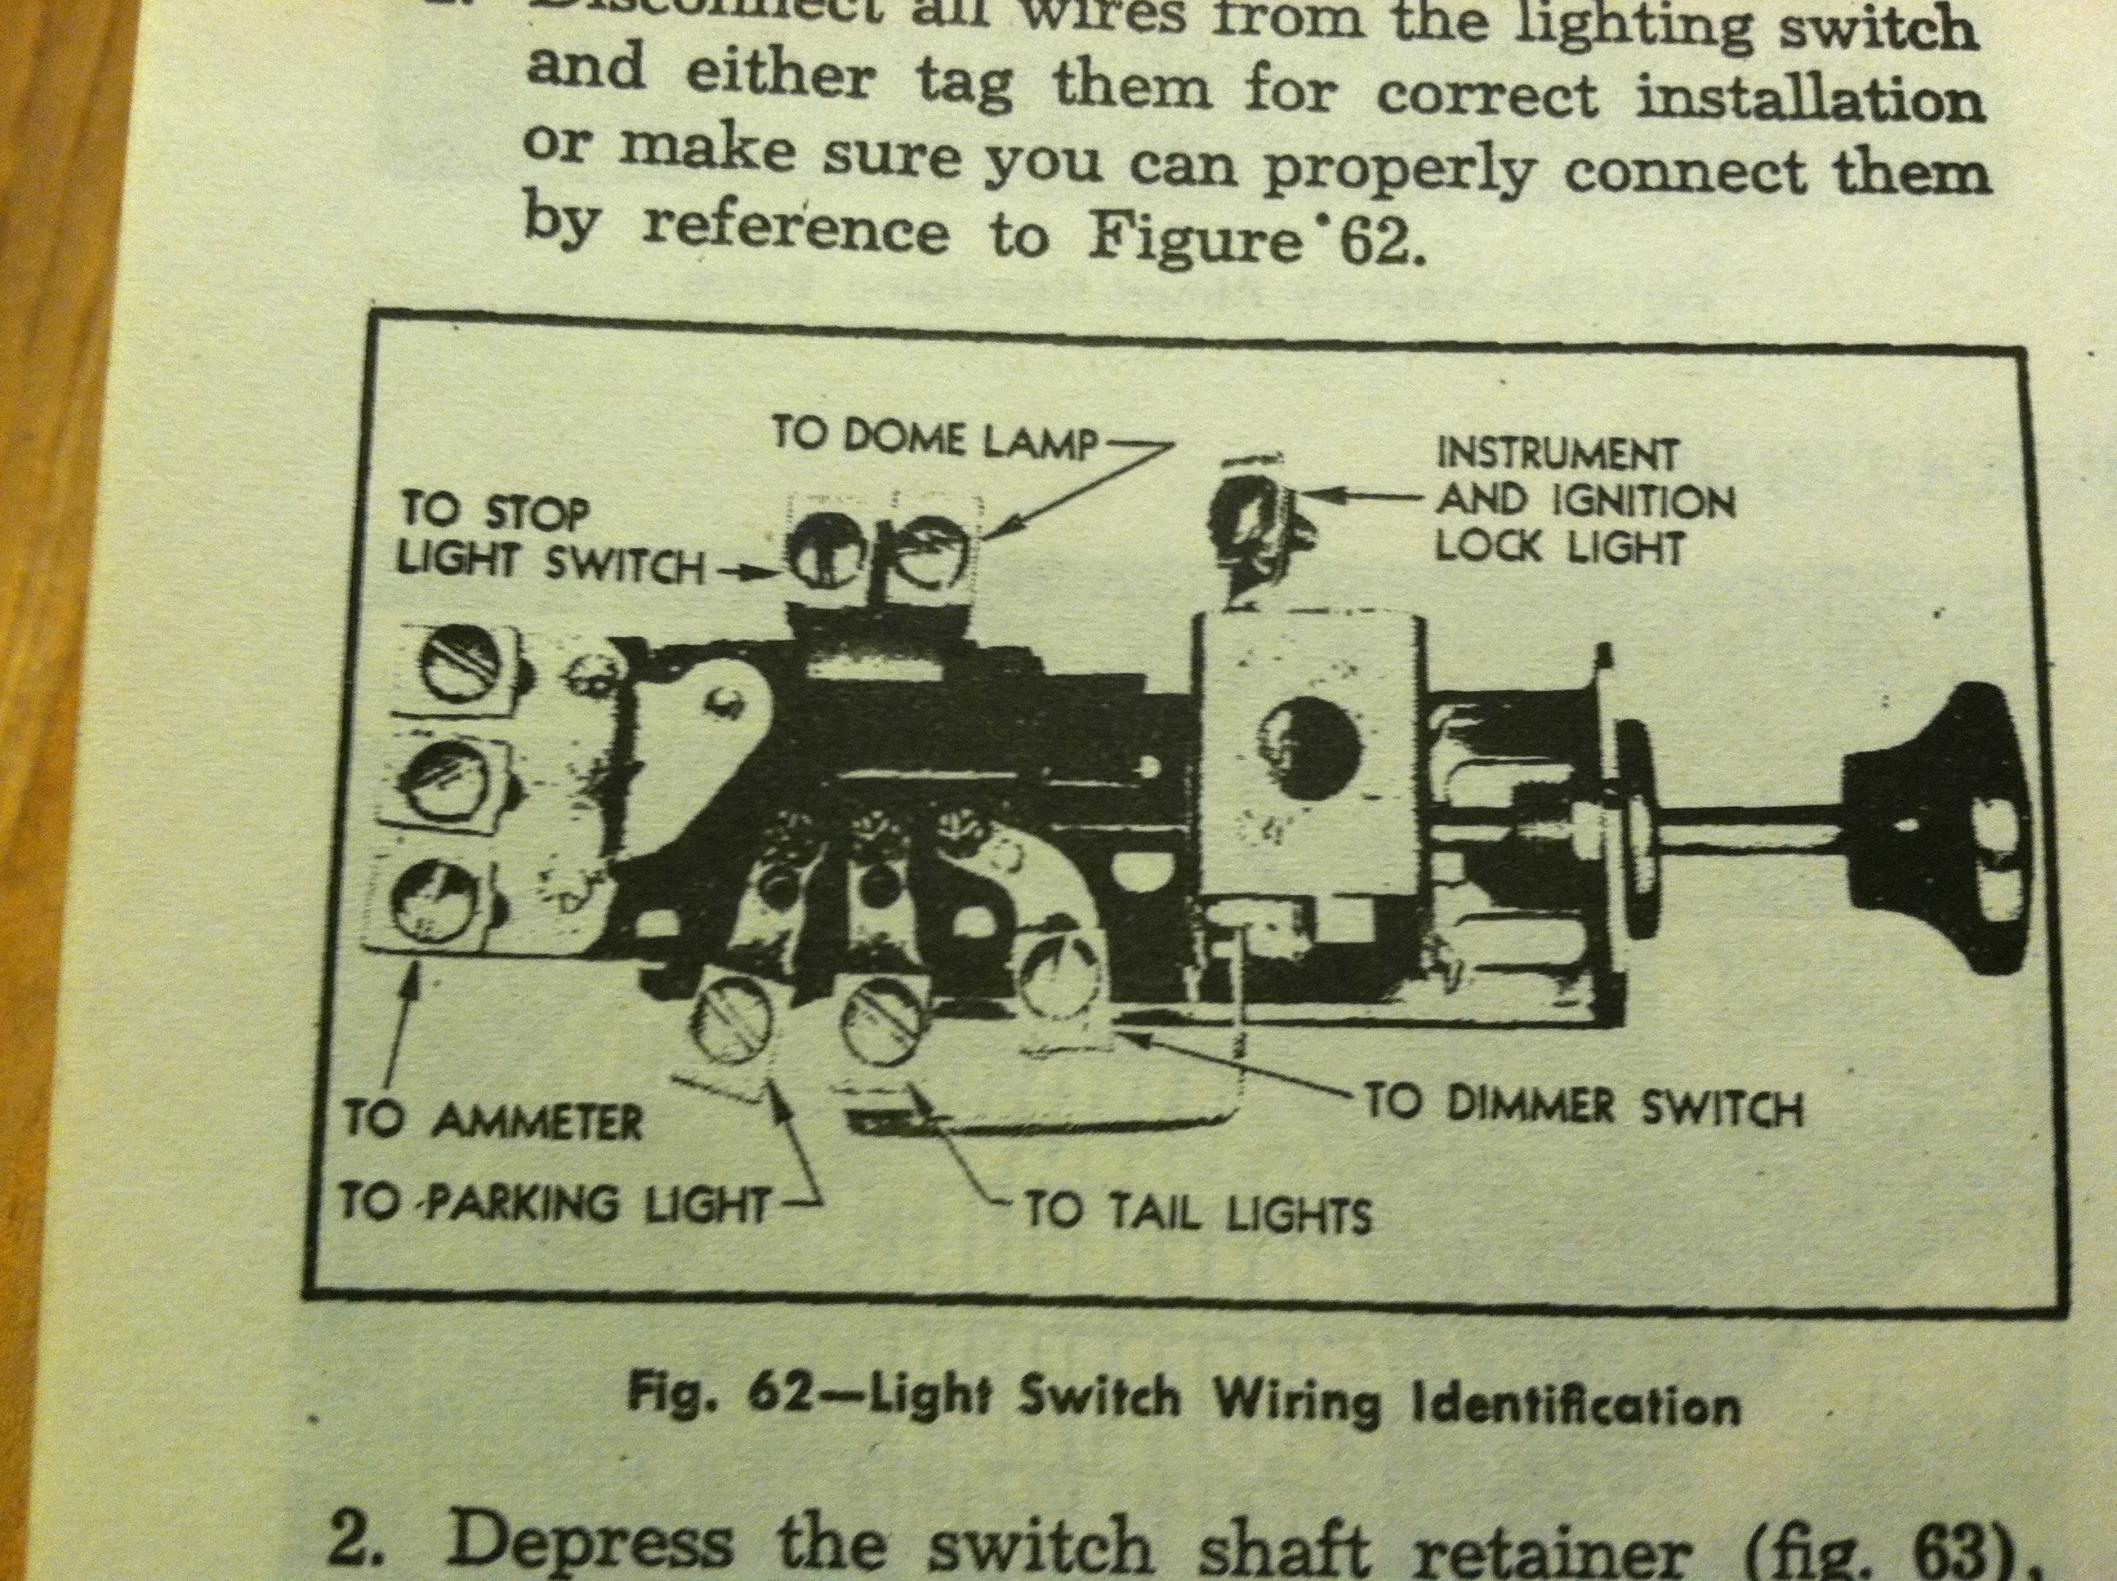 1954 gm headlight switch wiring diagram - wiring diagrams word nice-source-a  - nice-source-a.romaontheroad.it  roma on the road